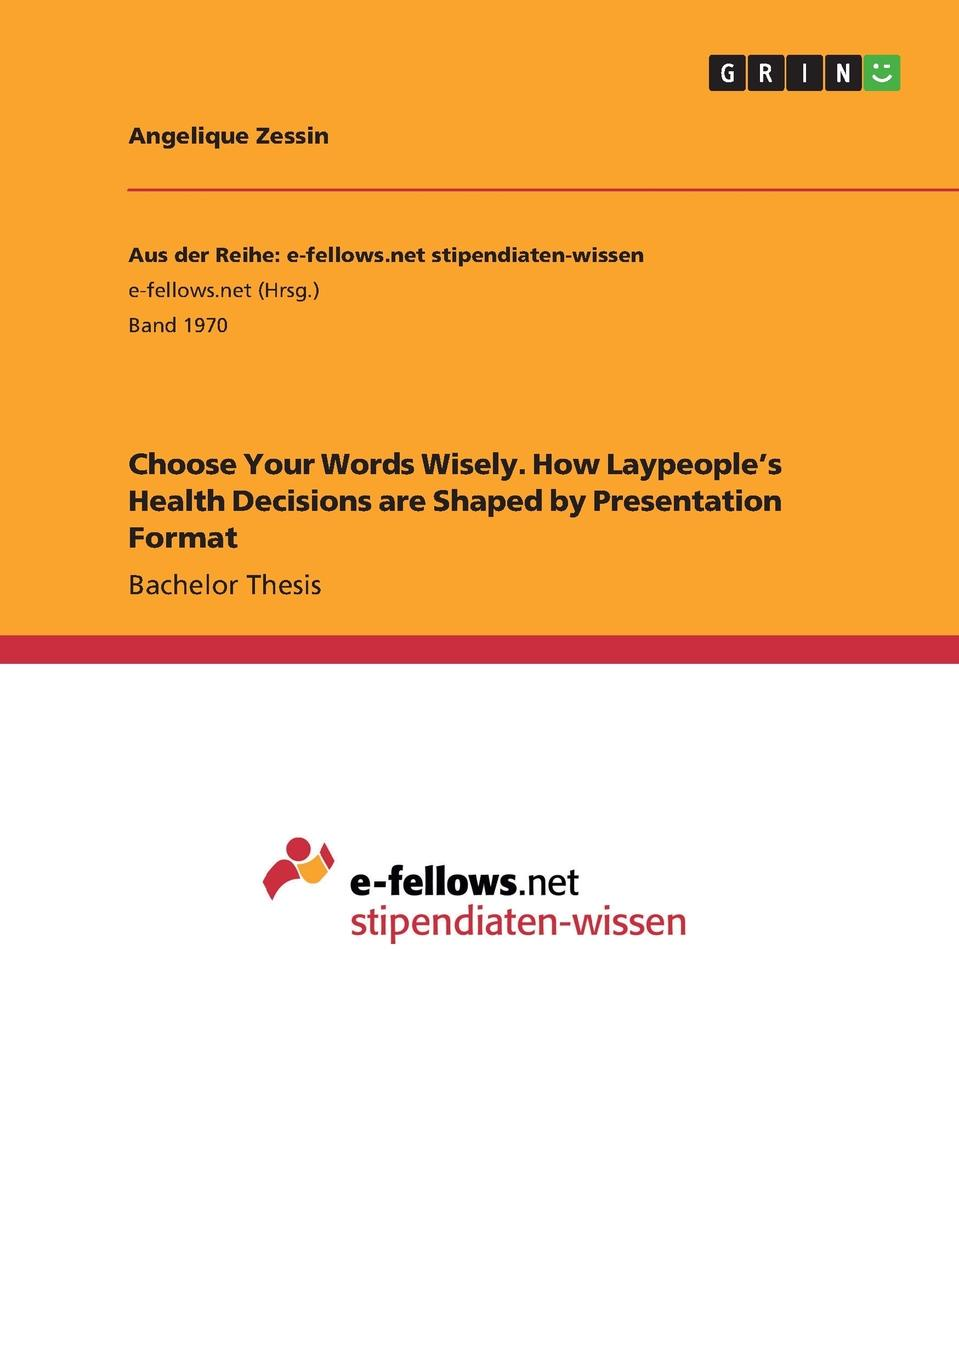 Angelique Zessin Choose Your Words Wisely. How Laypeople.s Health Decisions are Shaped by Presentation Format david dowrick j earthquake resistant design and risk reduction